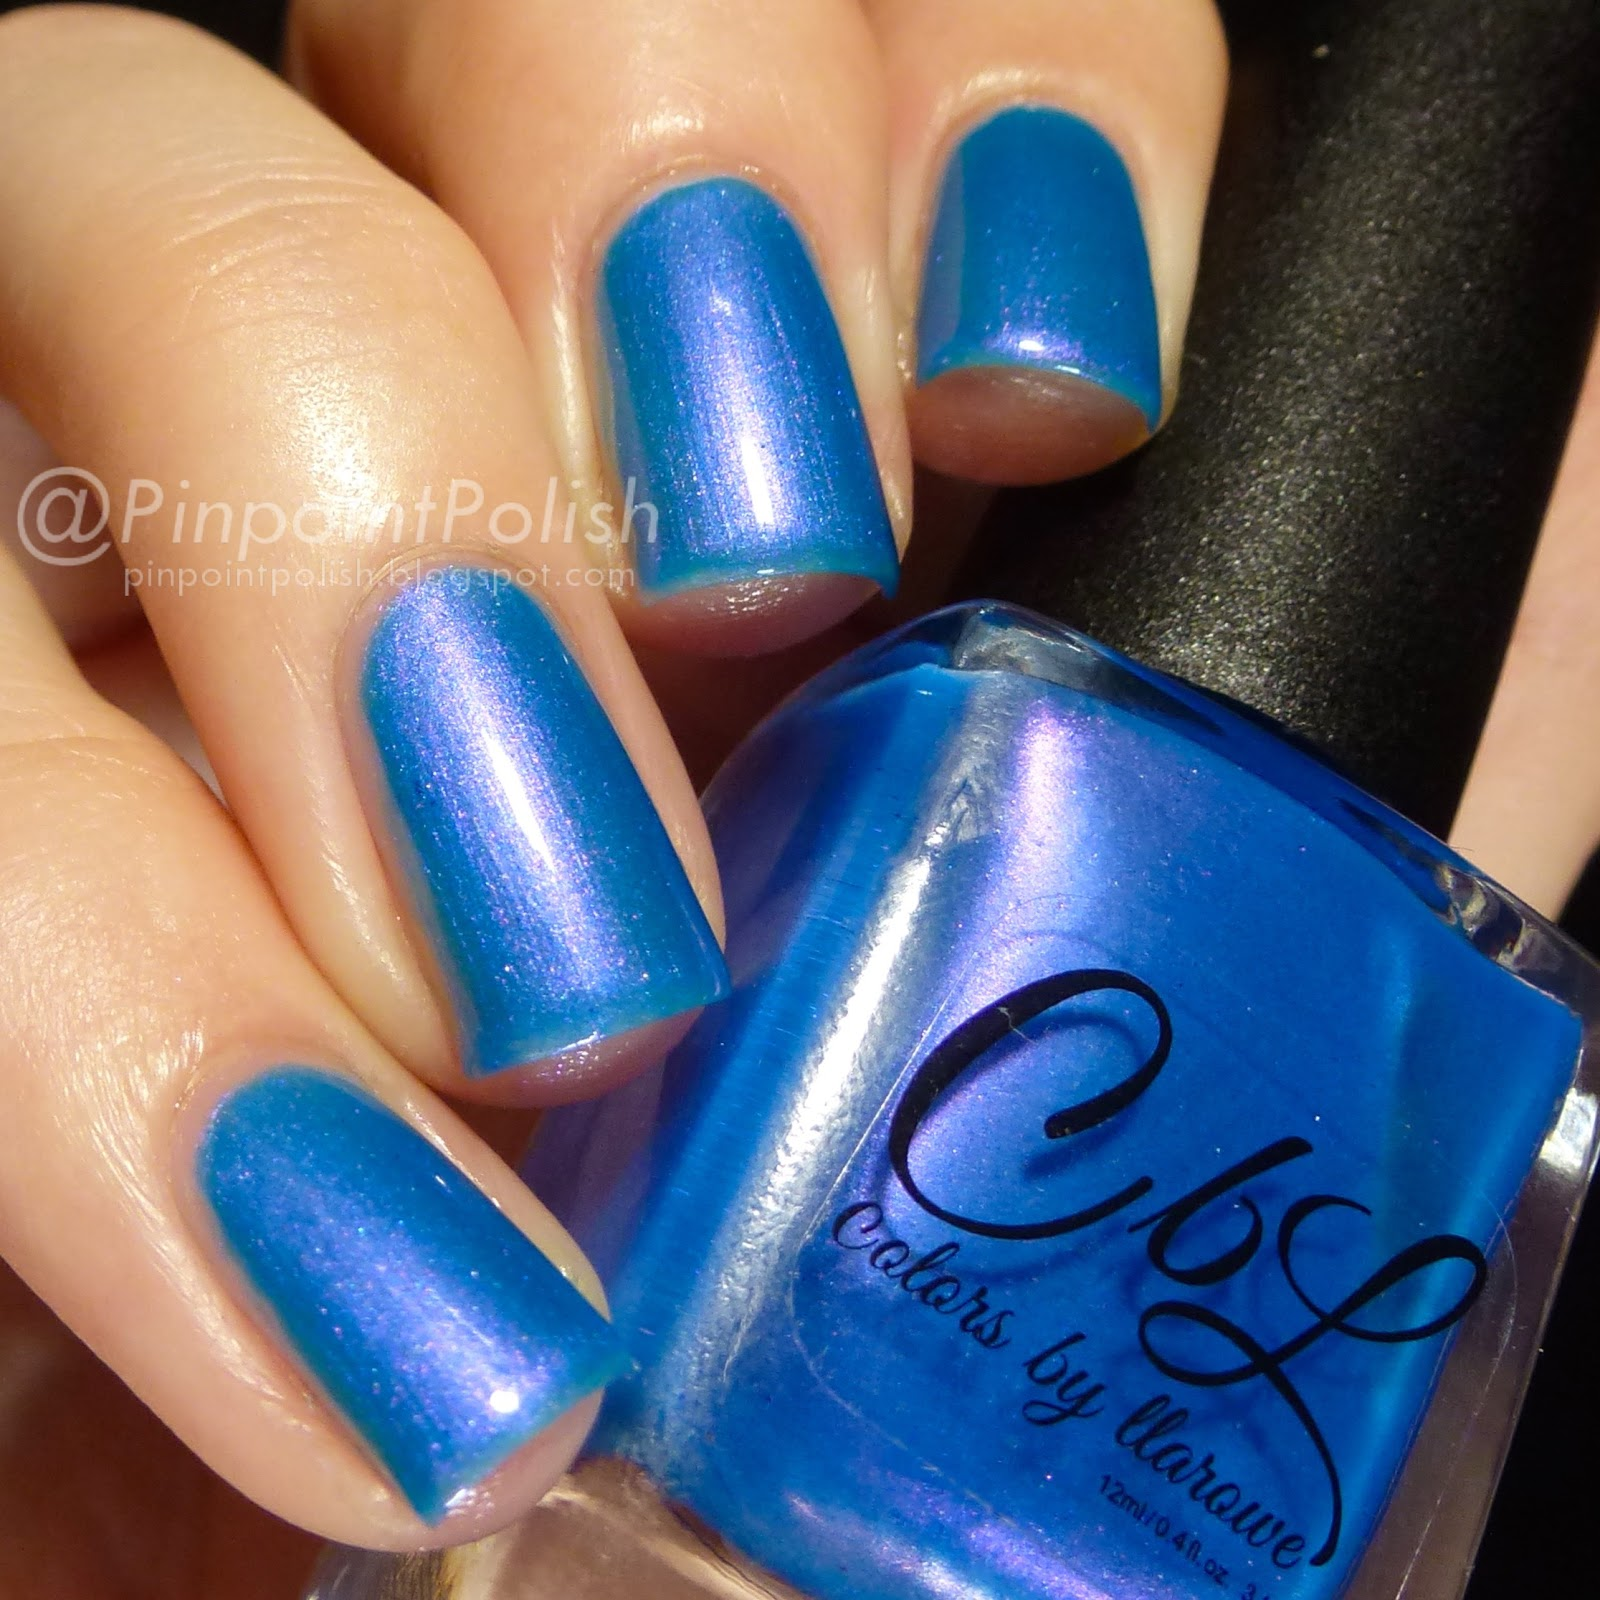 I Want the Fairytale, Colors by Llarowe, swatch